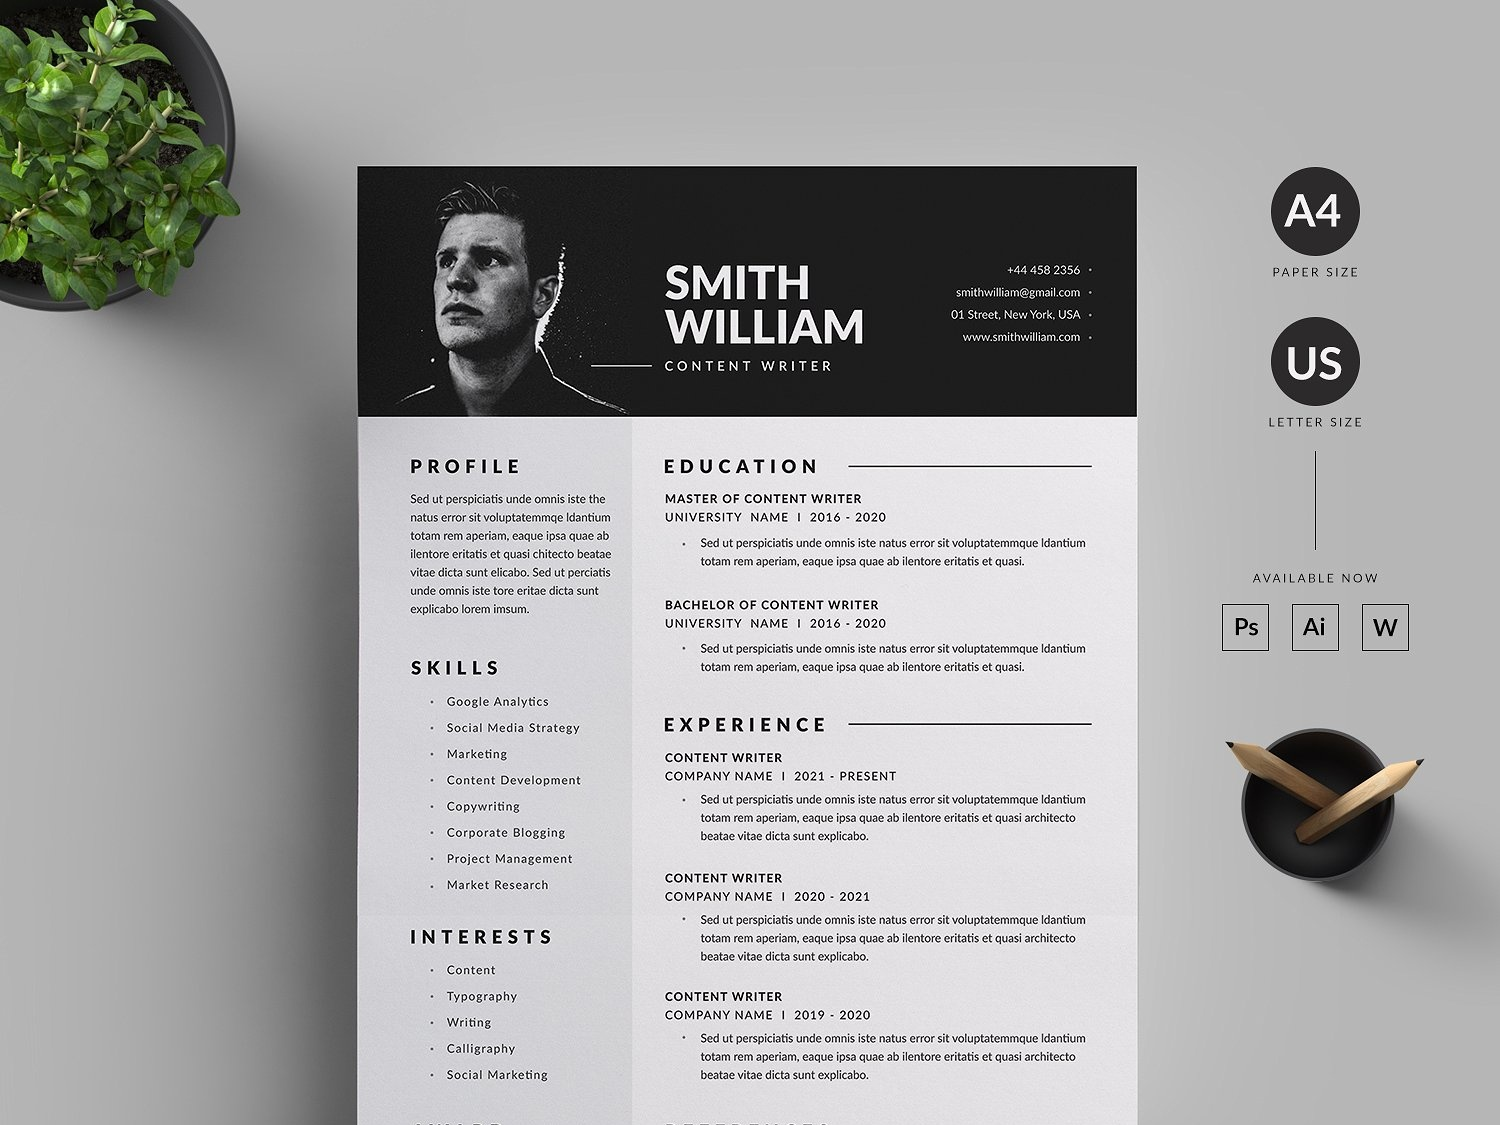 Resume Cv By Resume Templates Dribbble Dribbble